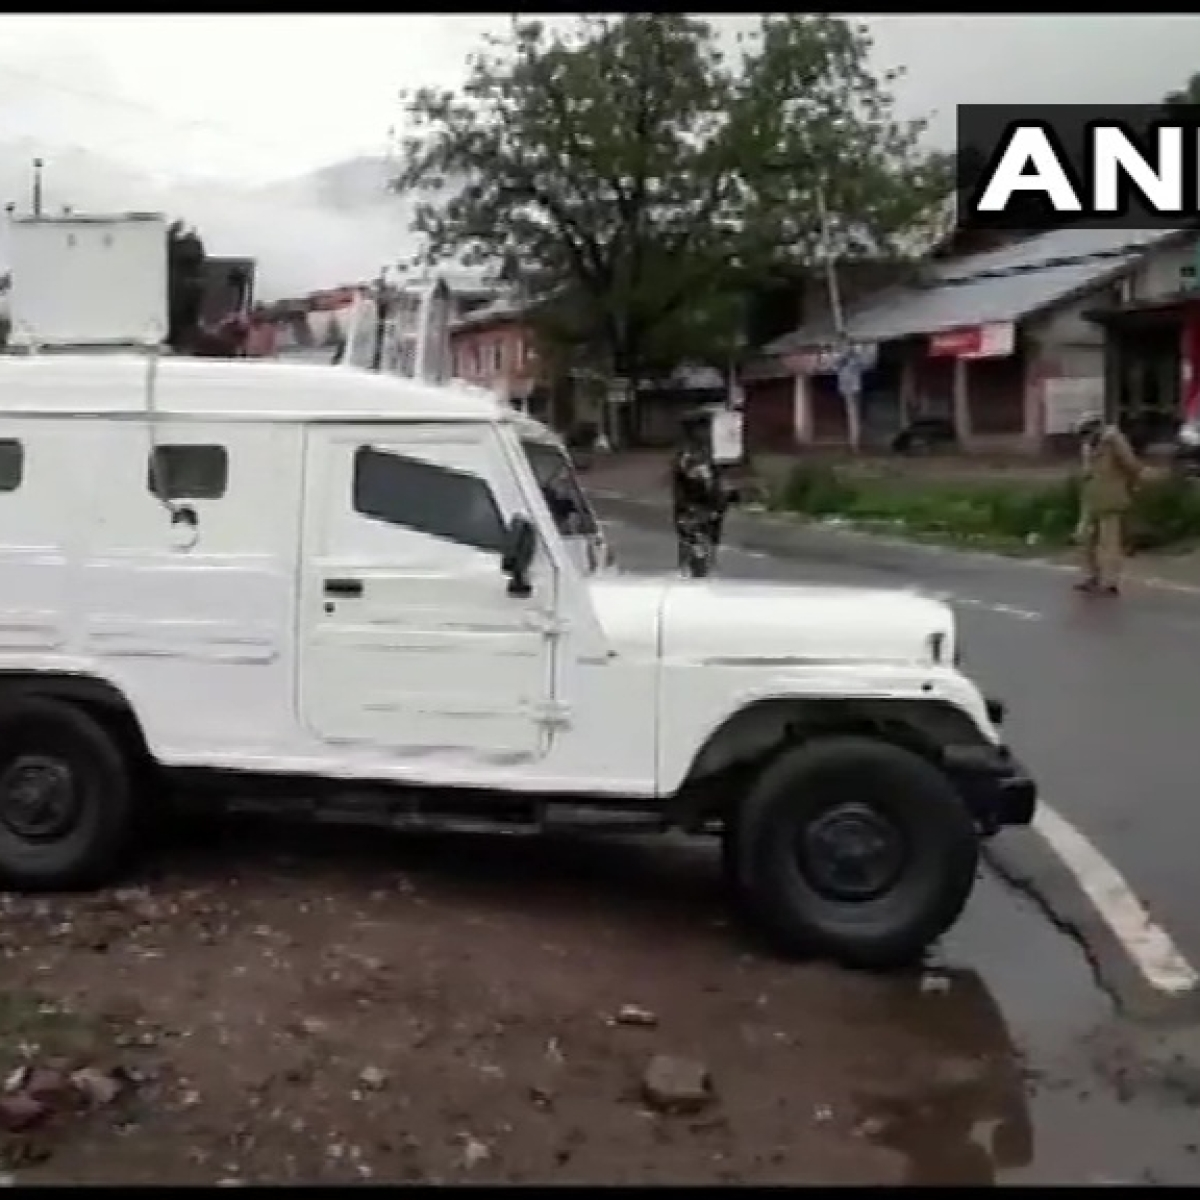 3 LeT terrorists killed in Jammu and Kashmir's Anantnag district